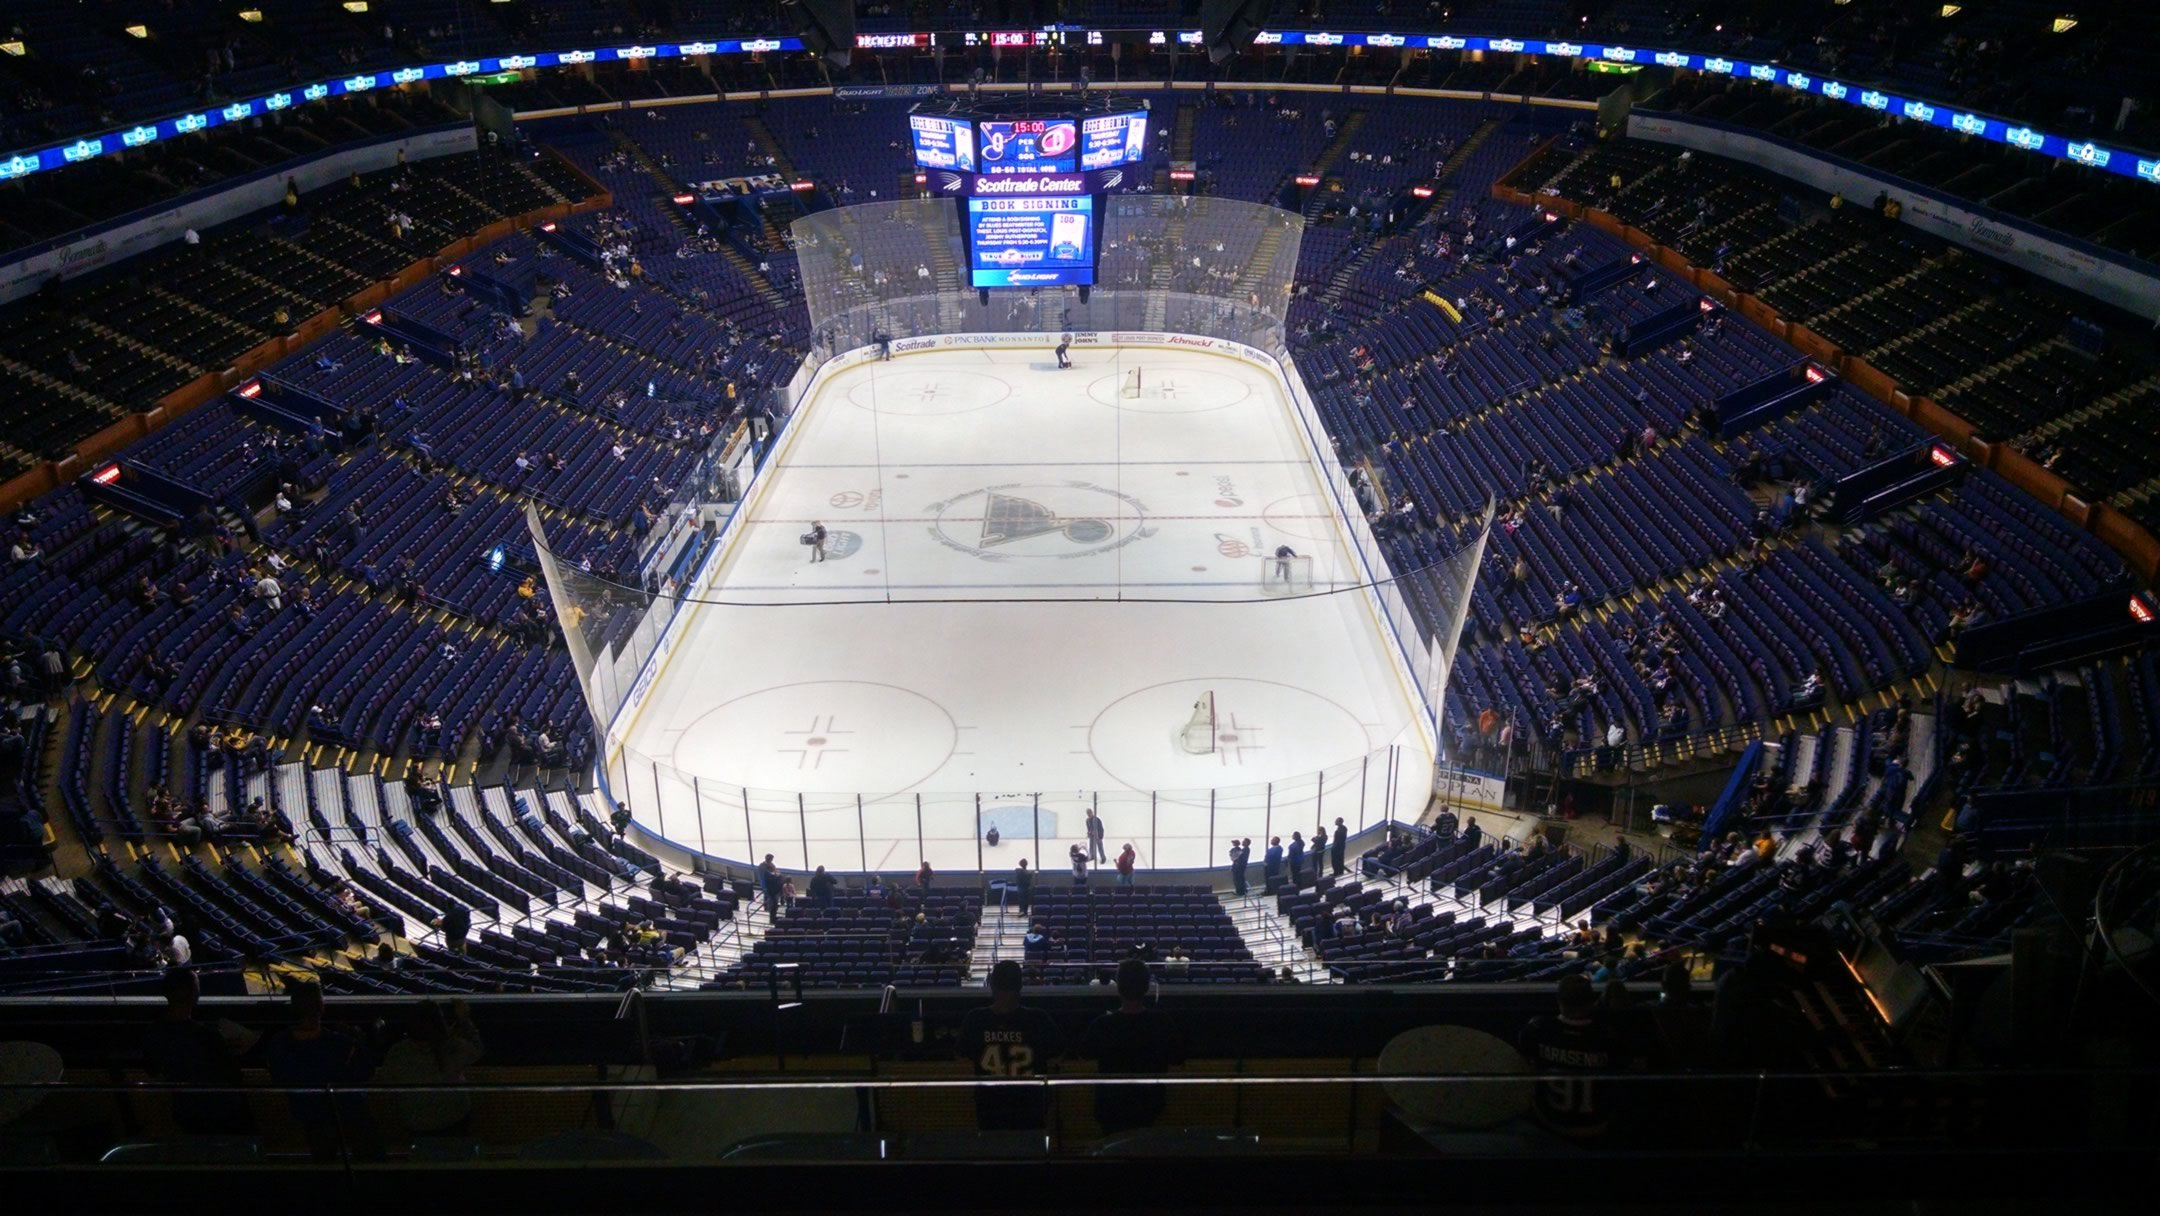 The view from the Pepsi Plaza on the northeast end of the rink